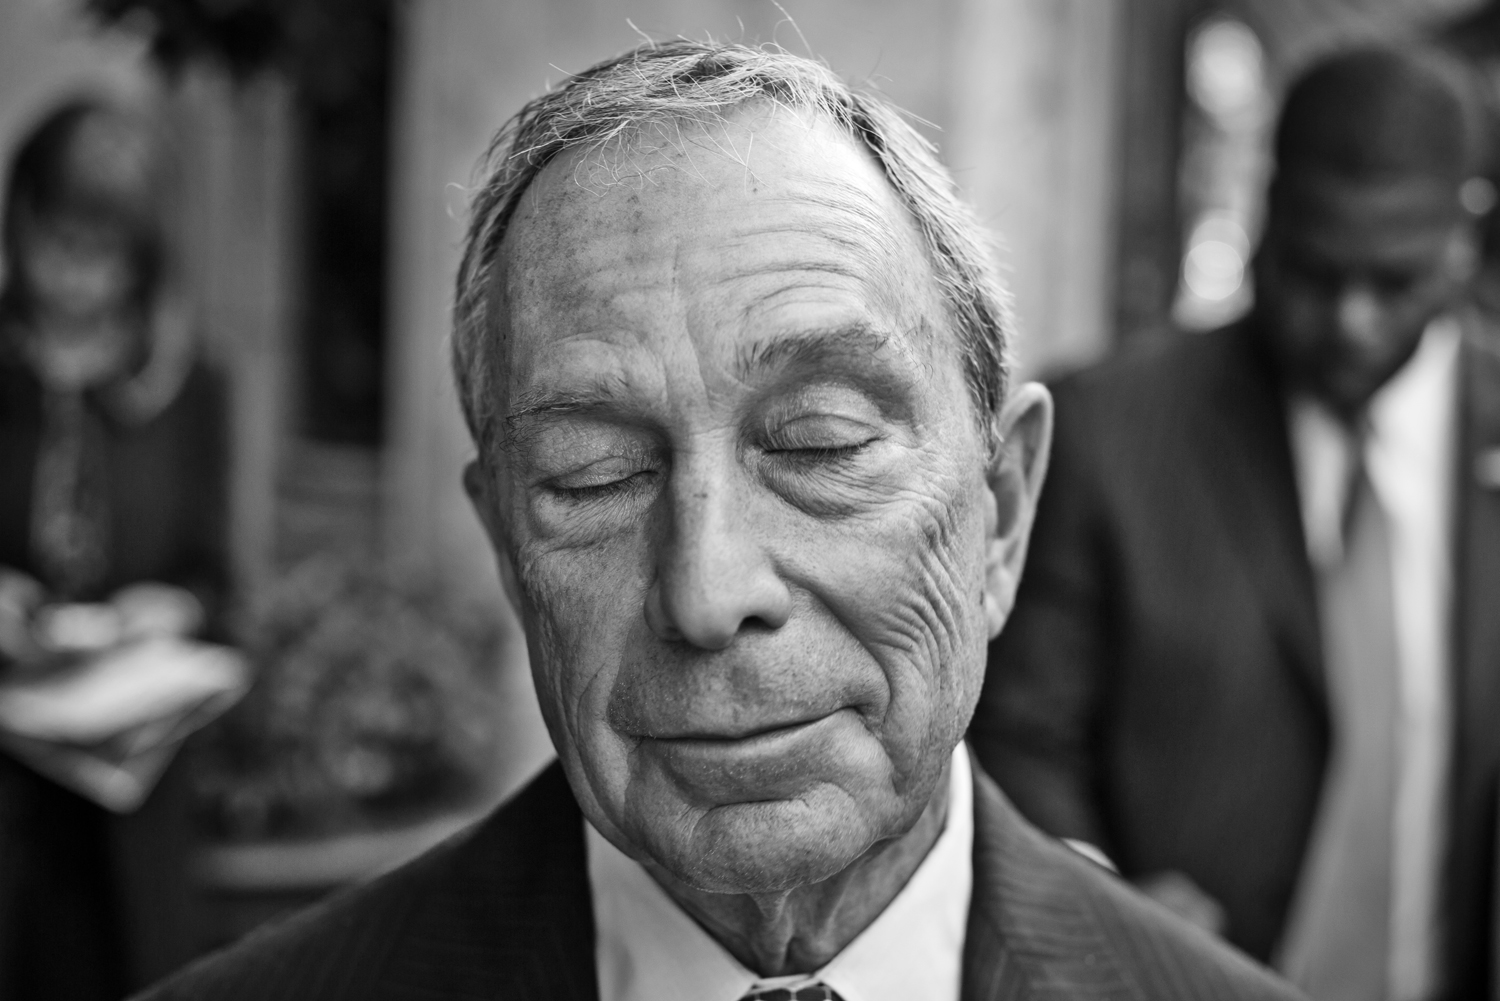 Michael Bloomberg. From  Bloomberg Unbound,  Oct. 21, 2013 issue.